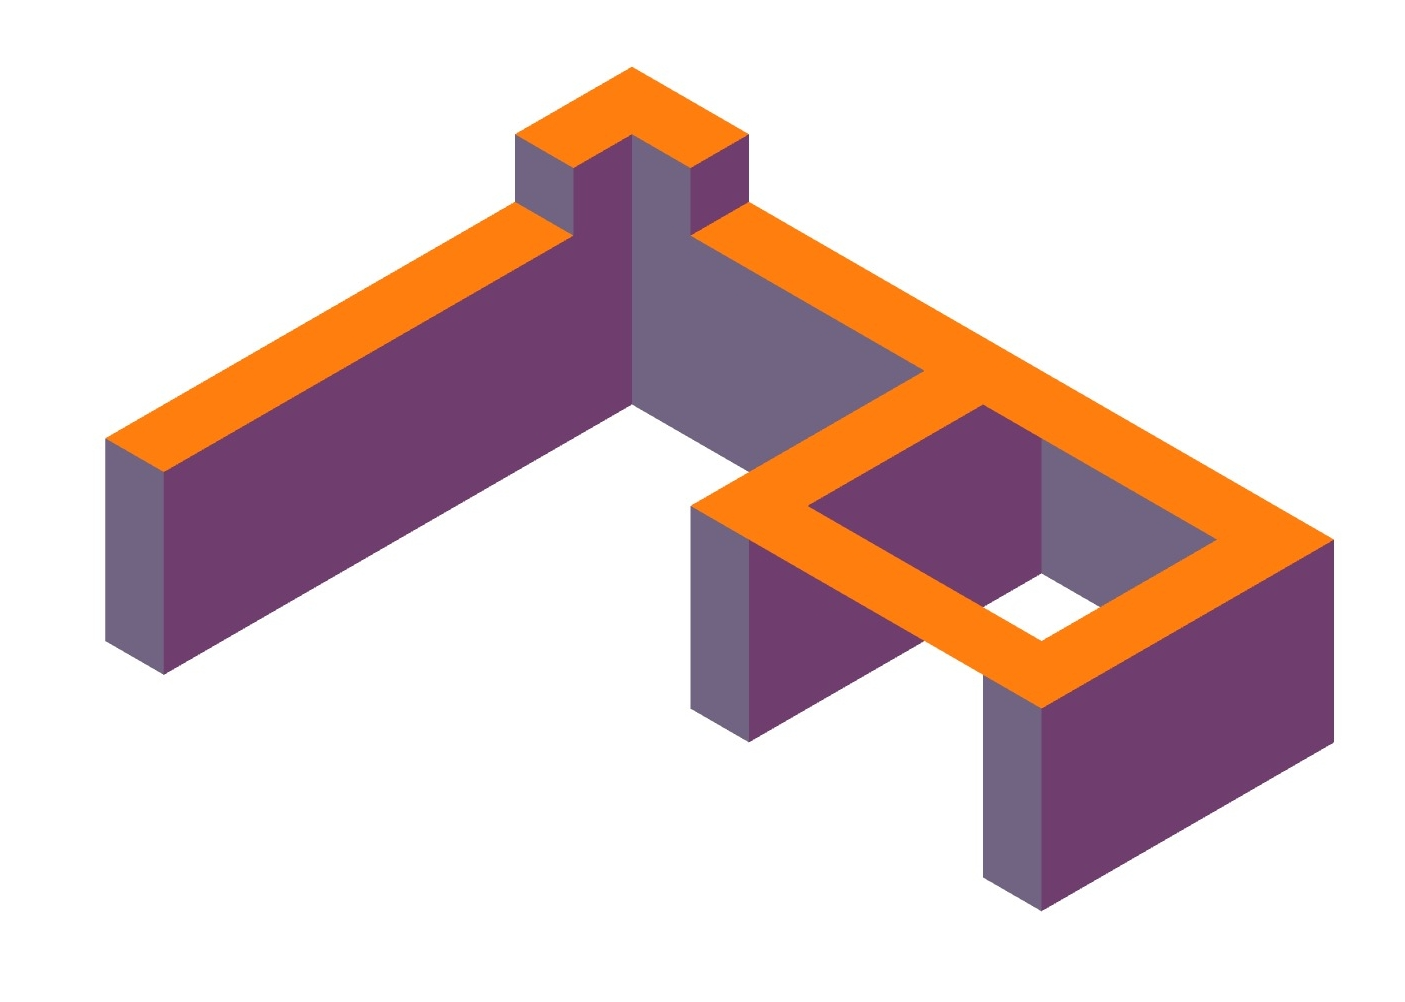 First structure design in  Isometric